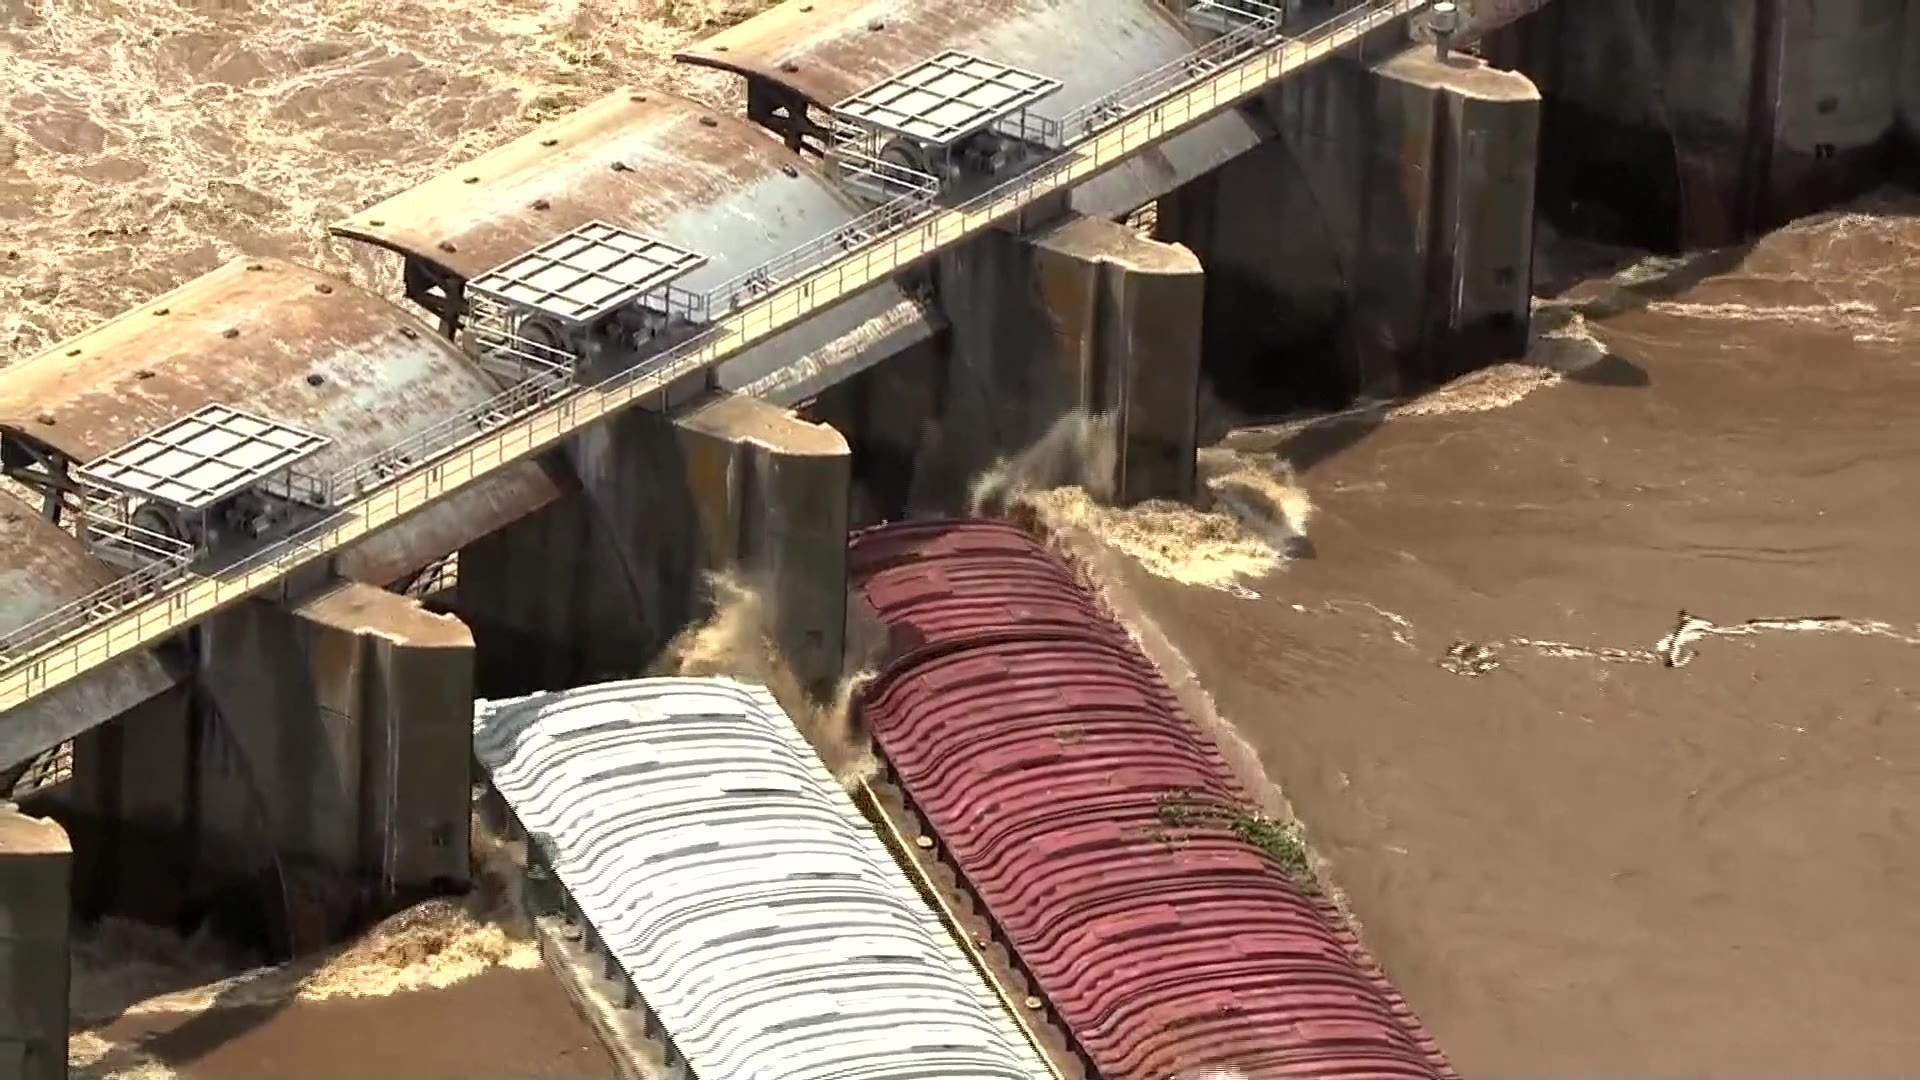 Barges_hit_Oklahoma_dam_on_Arkansas_Rive_8_20190523183750-118809306